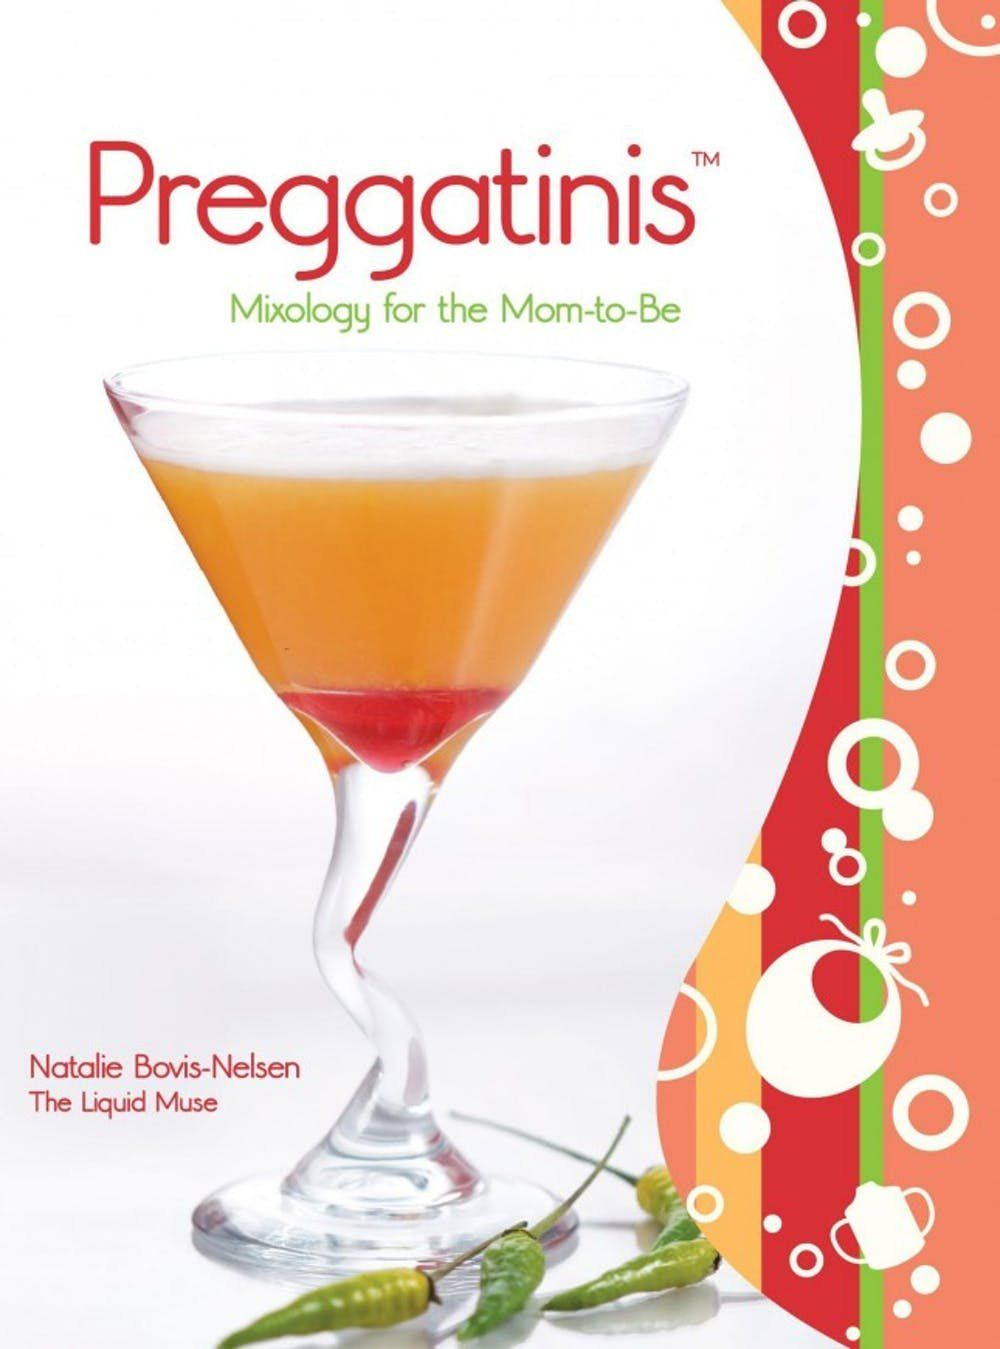 Gift ideas for pregnant women | 35 gifts a pregnant woman ACTUALLY